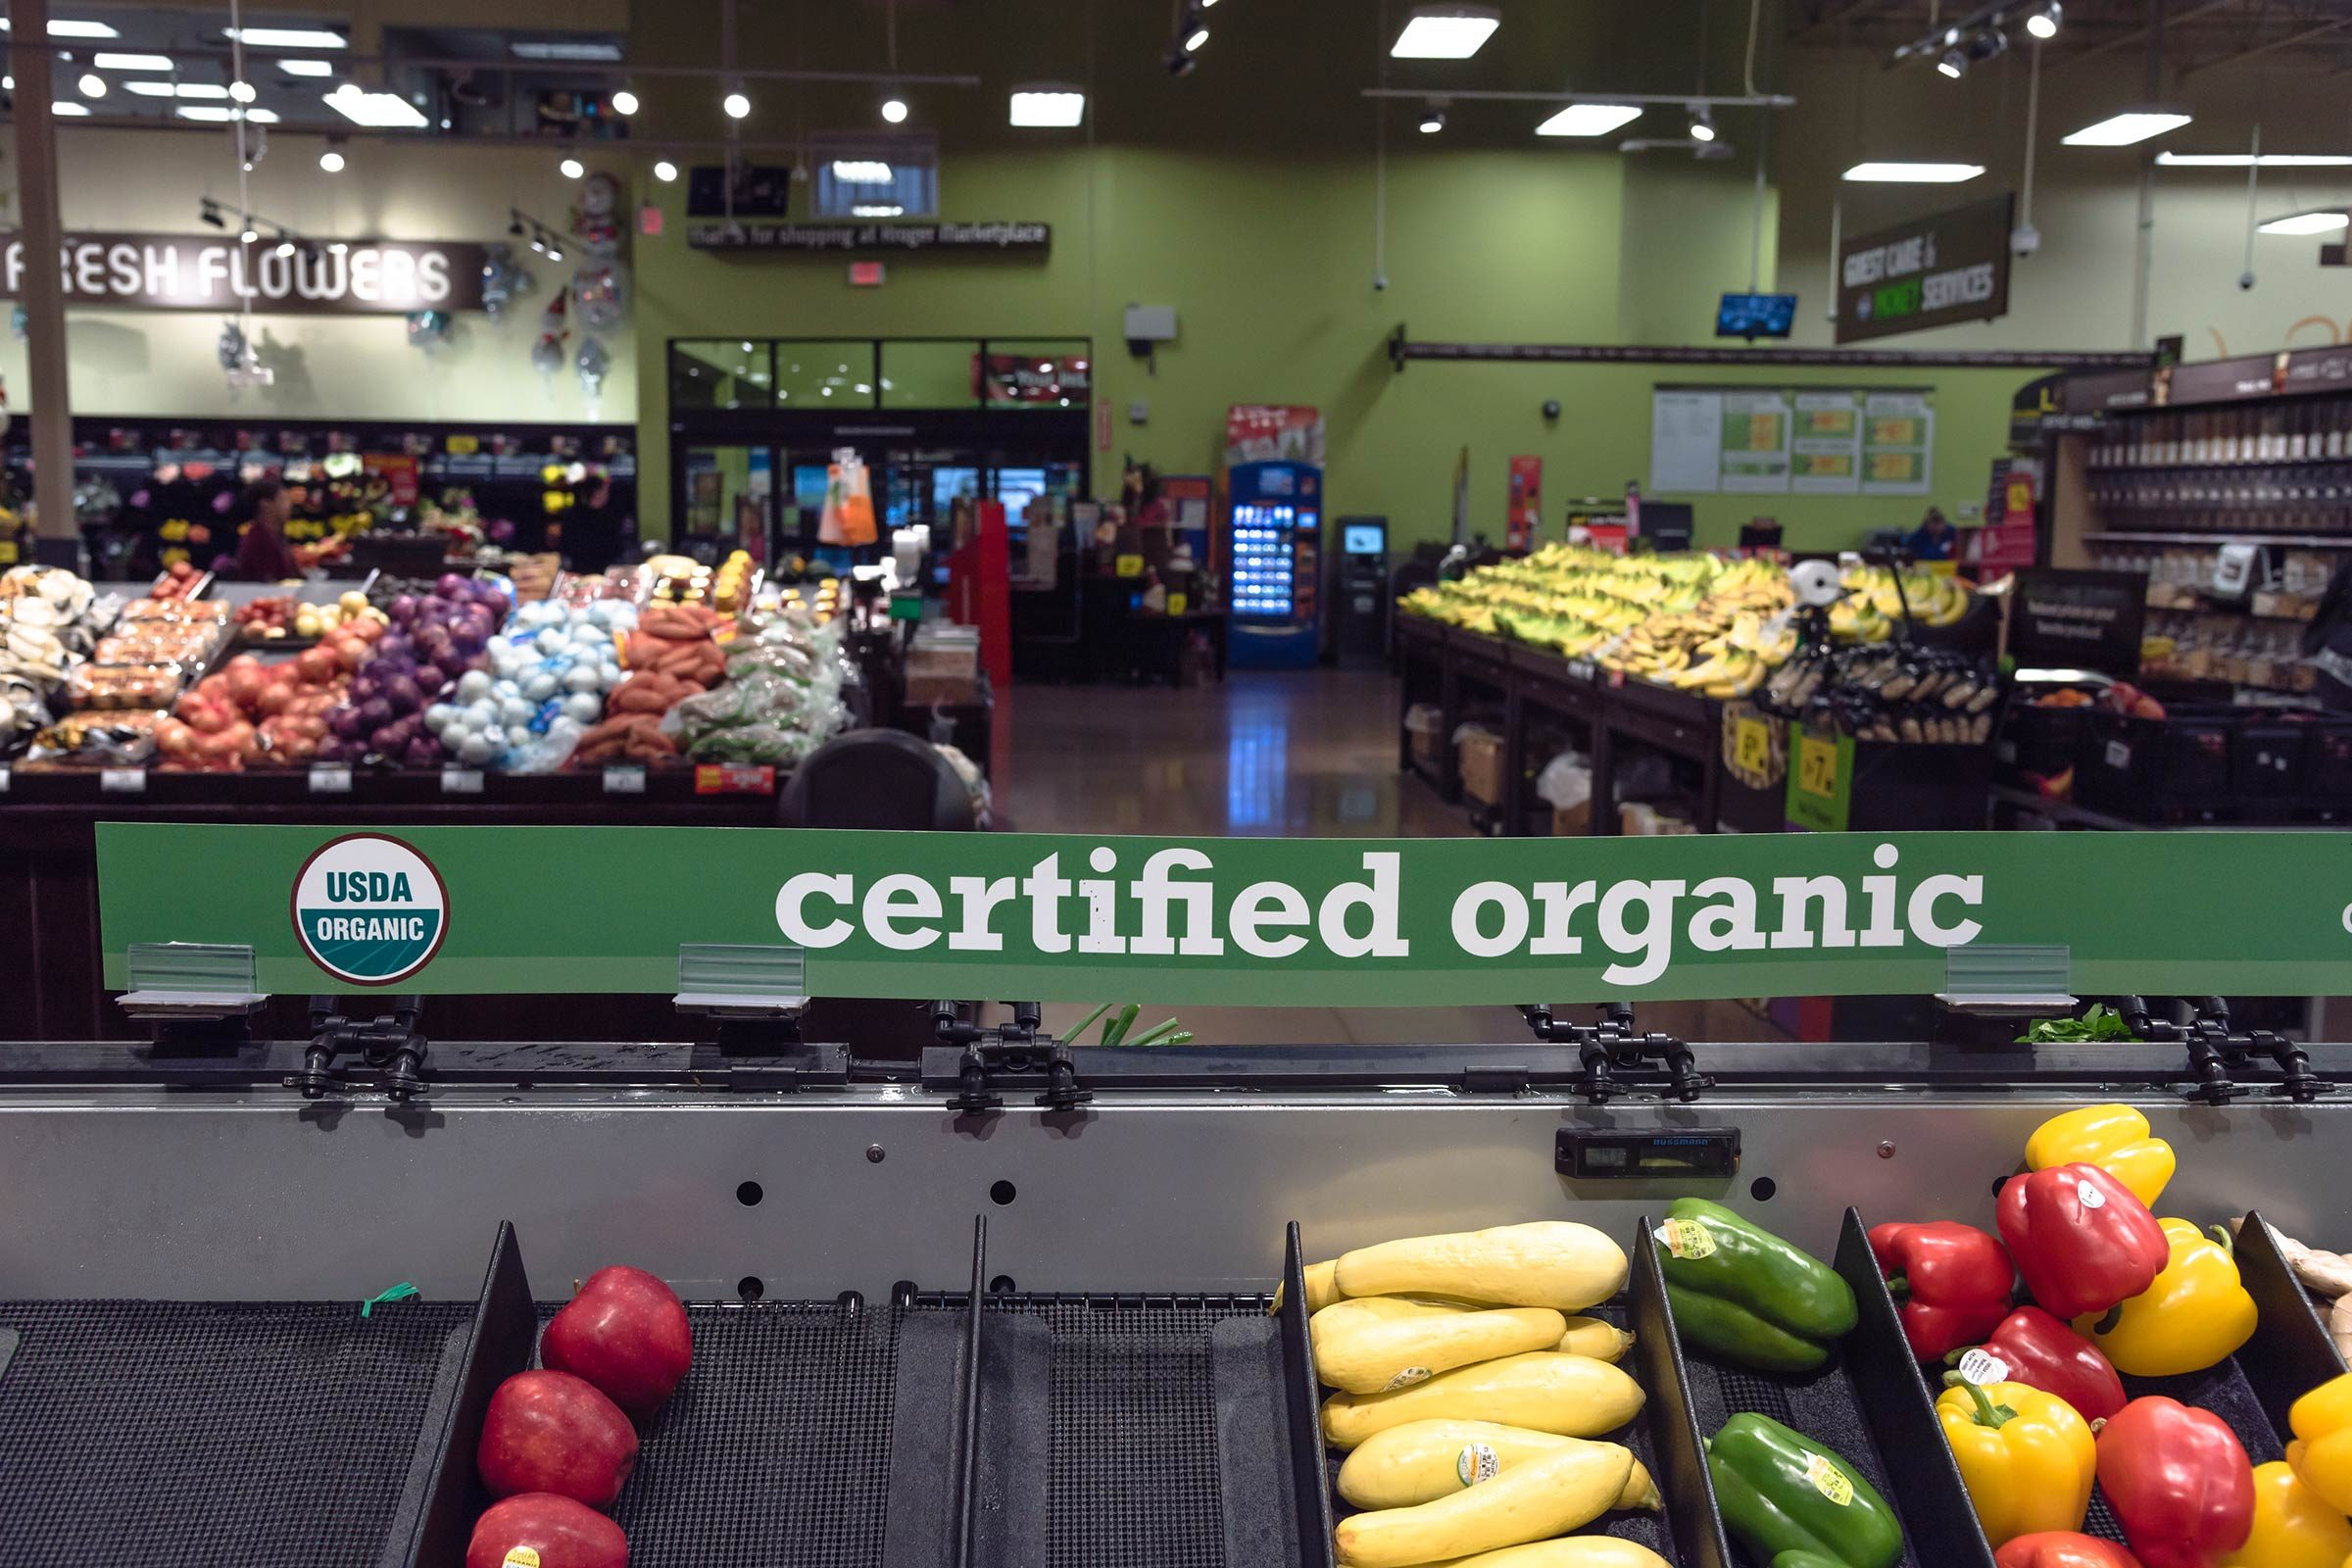 The Label We've All Been Waiting for on Genetically Modified Foods